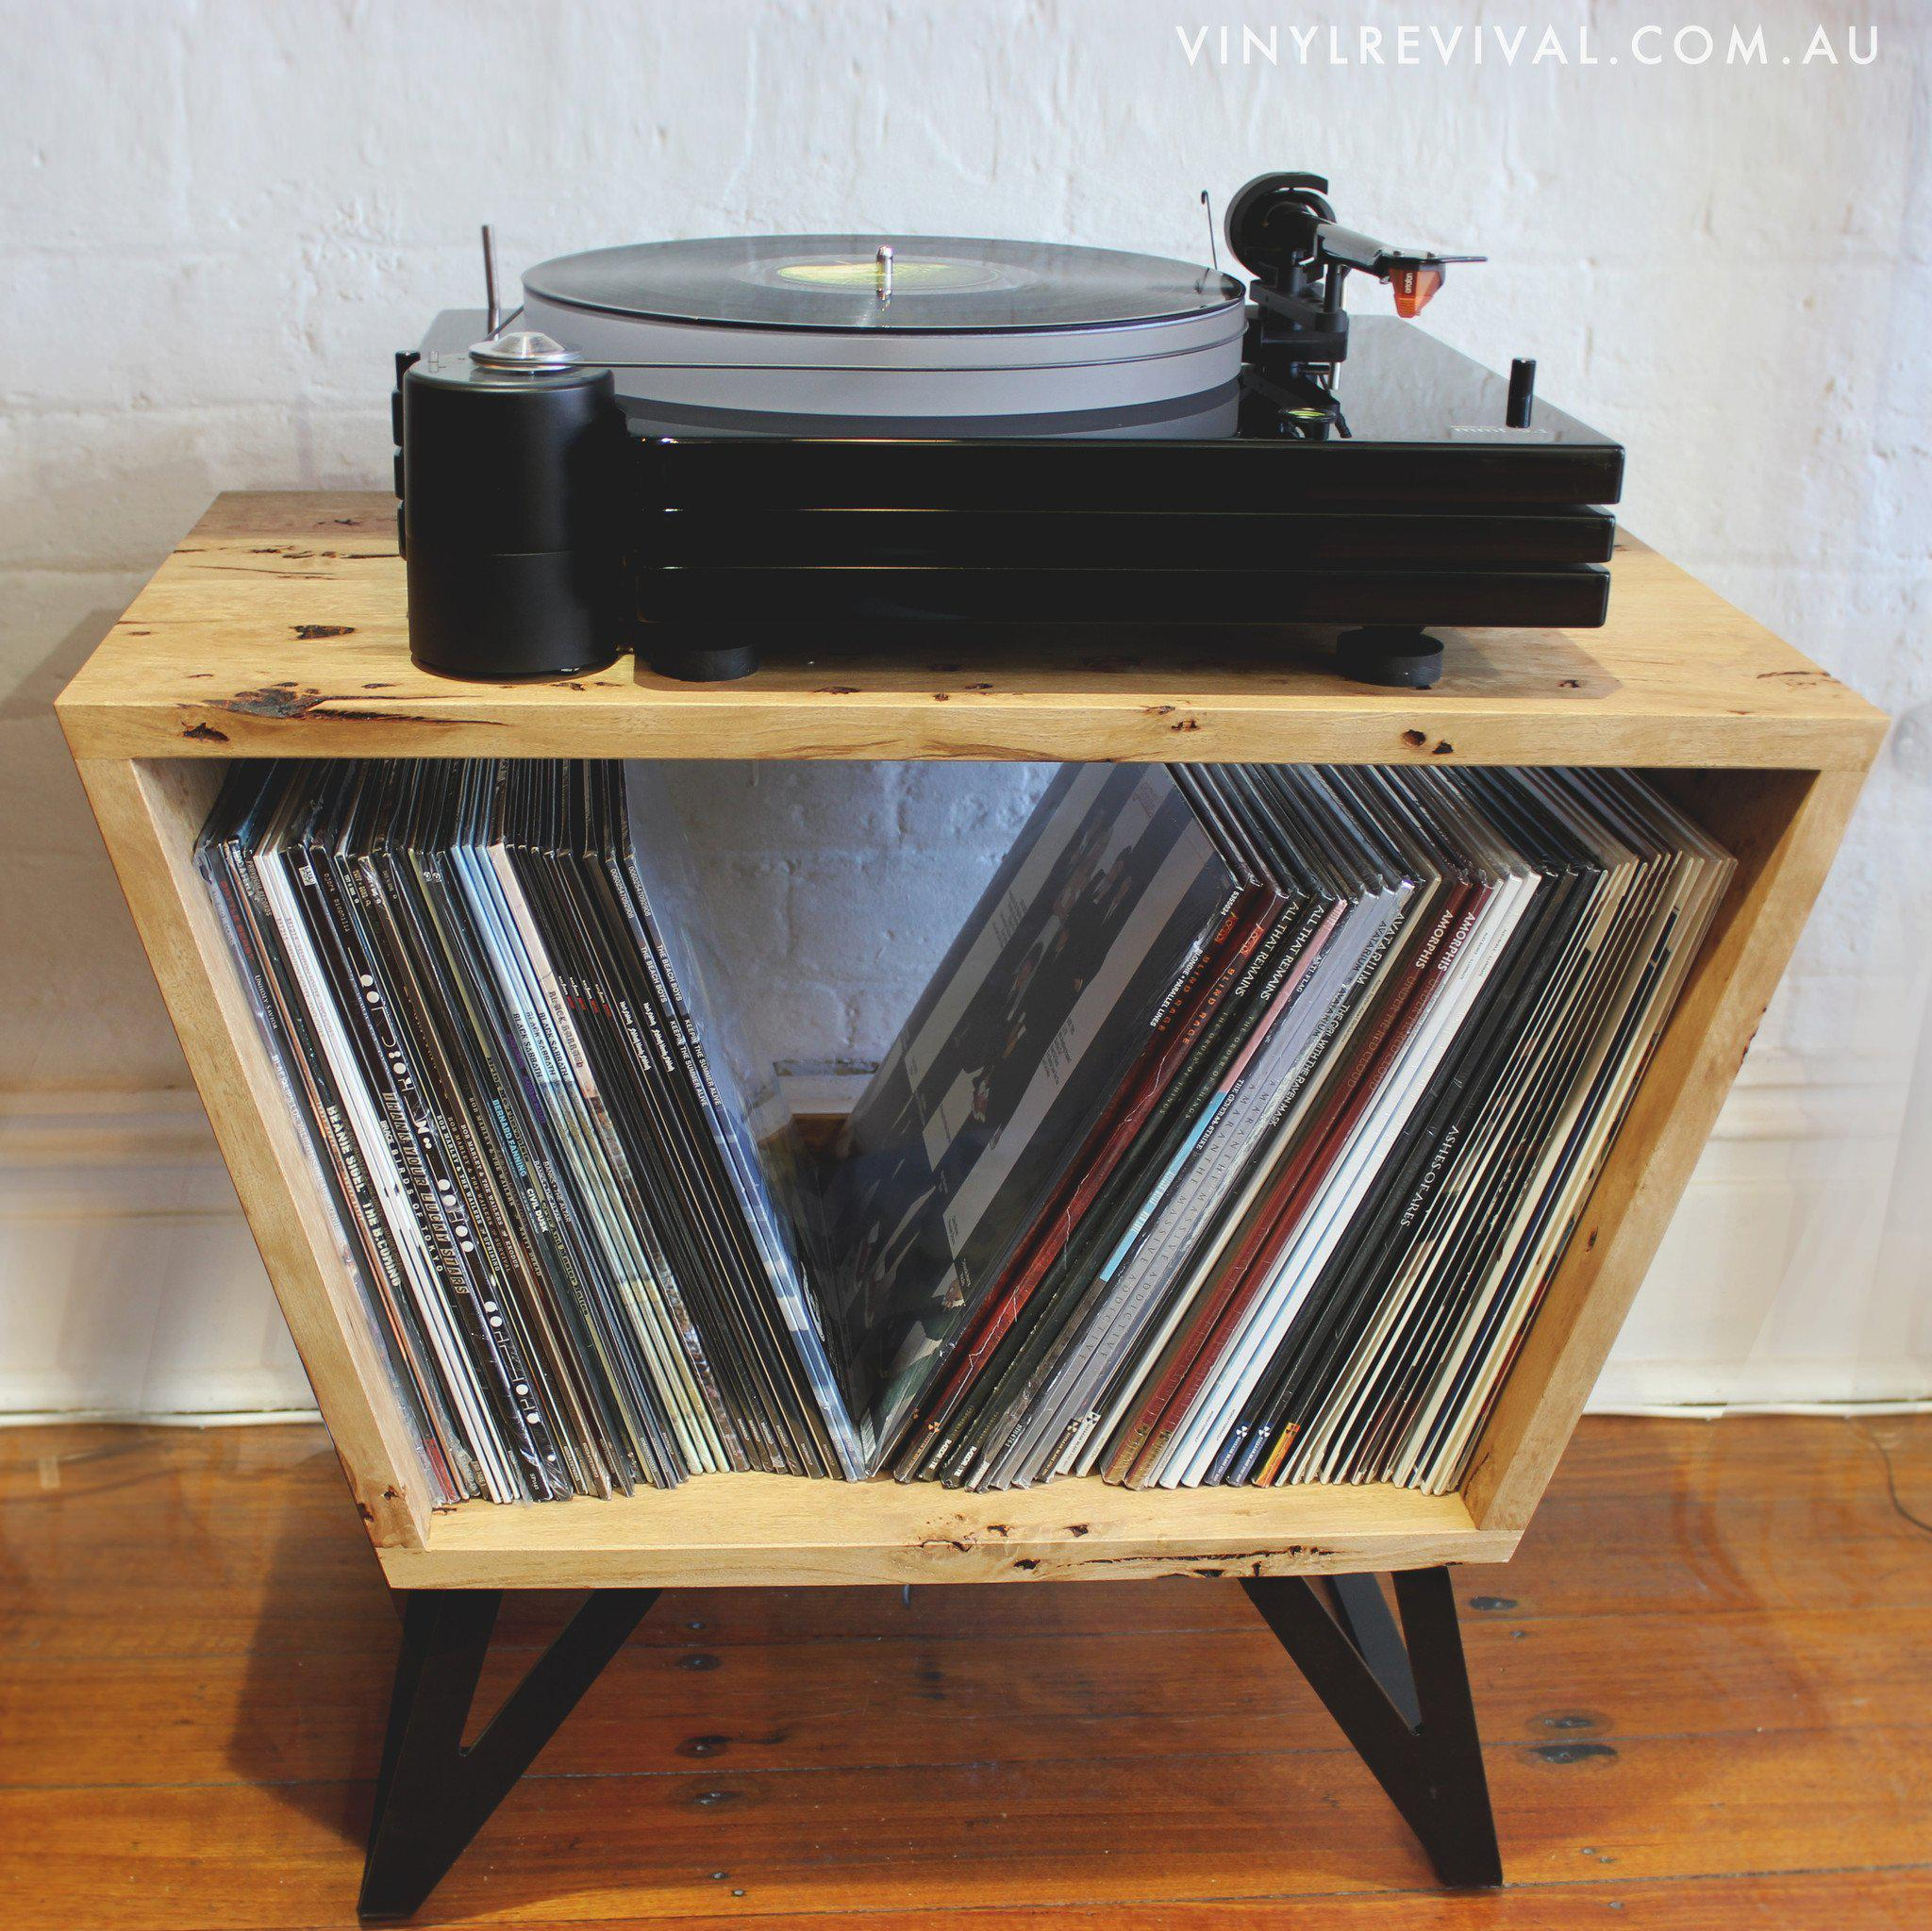 Handmade Record Player Console Vinyl Revival